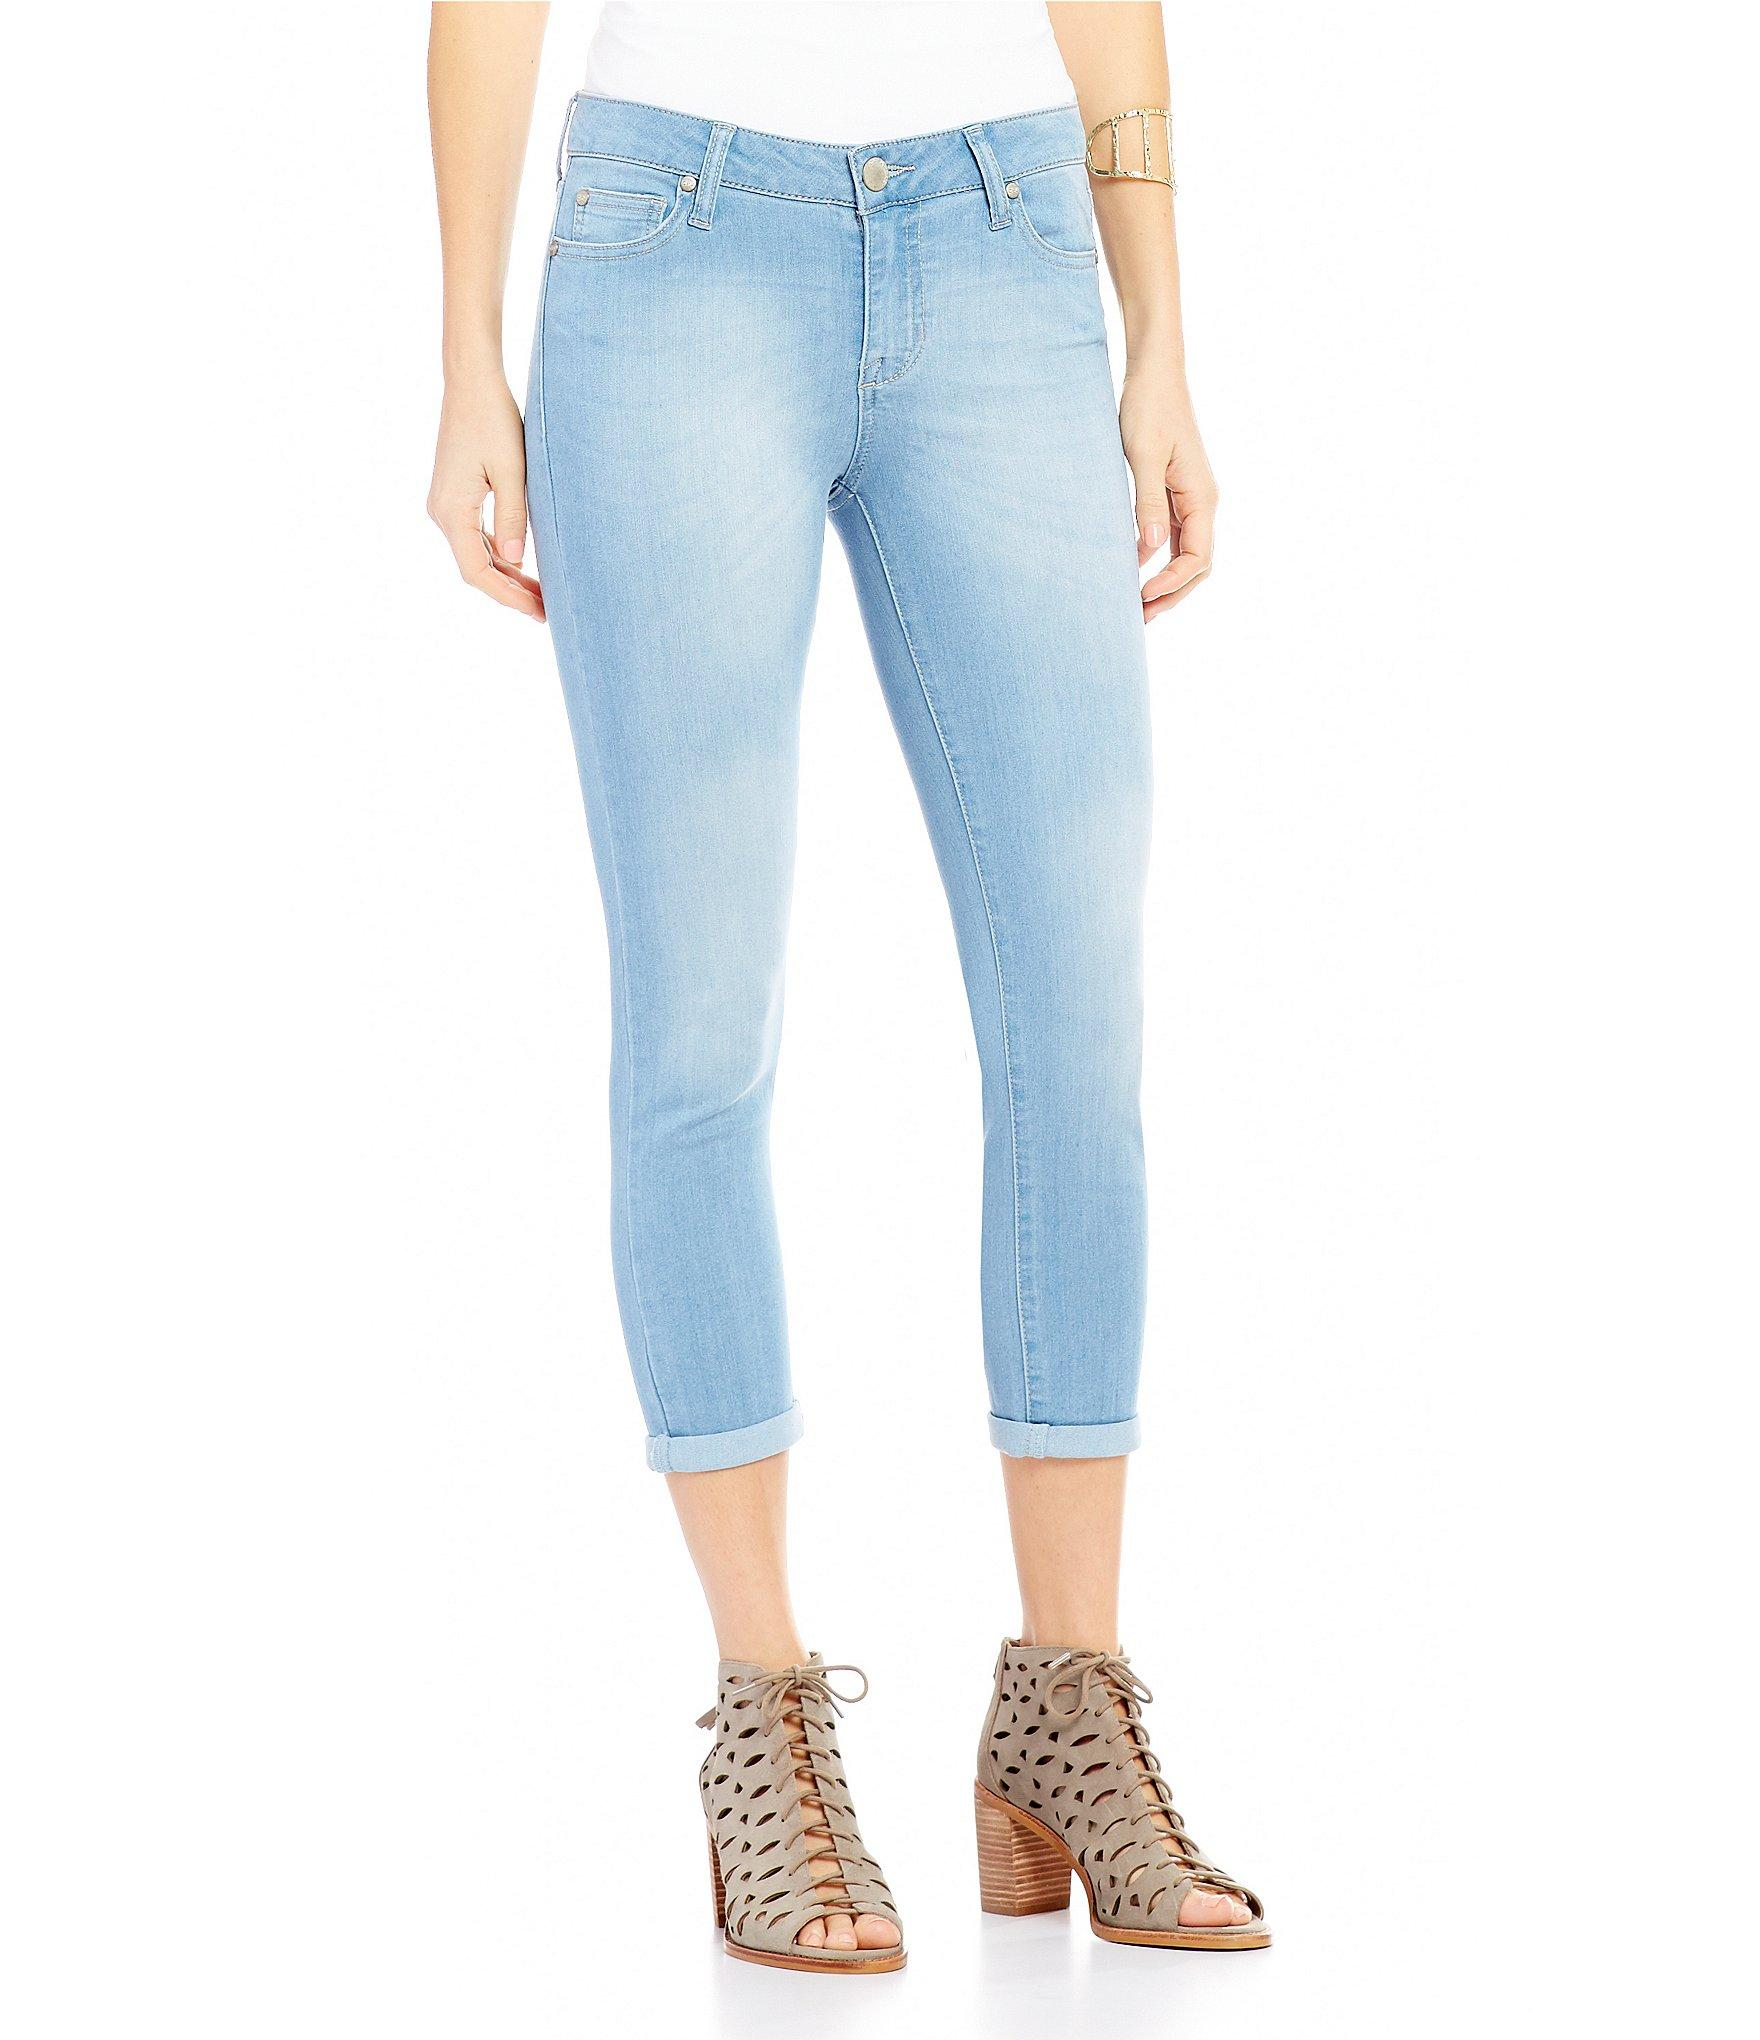 Celebrity Pink Colored Skinny Jean Jeans - sears.com